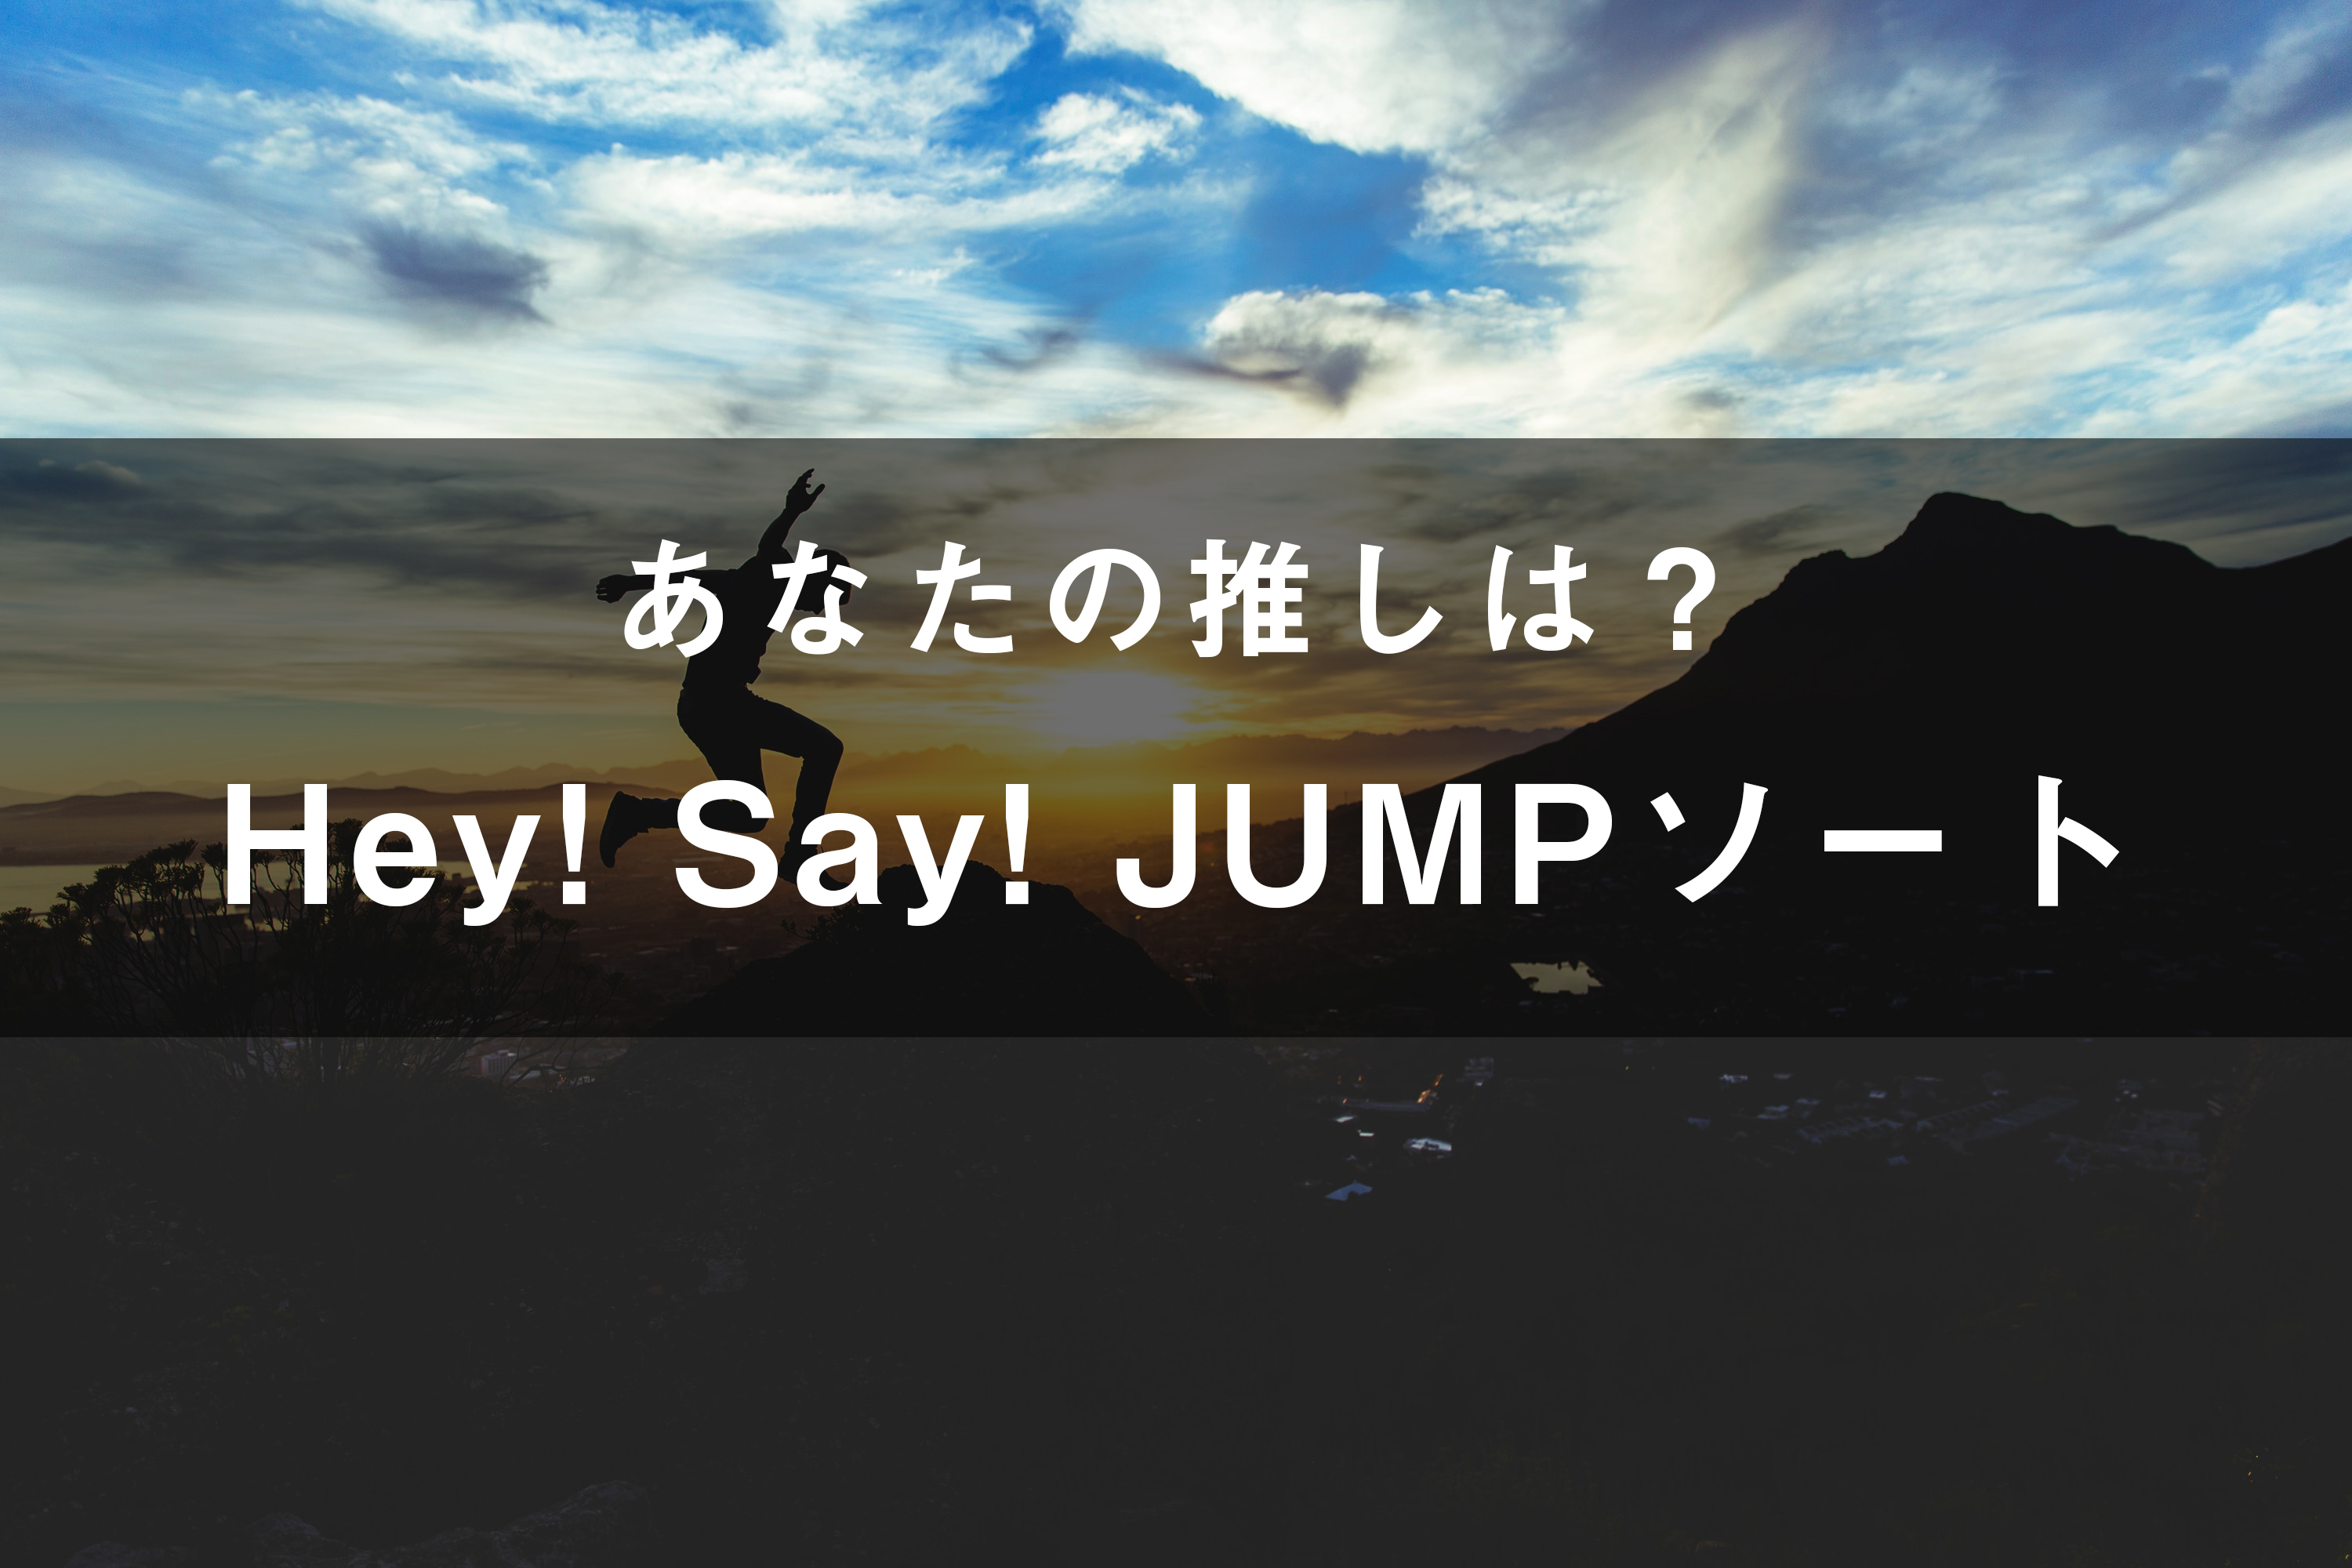 「Hey! Say! JUMP」のメンバーソート(画像付き)